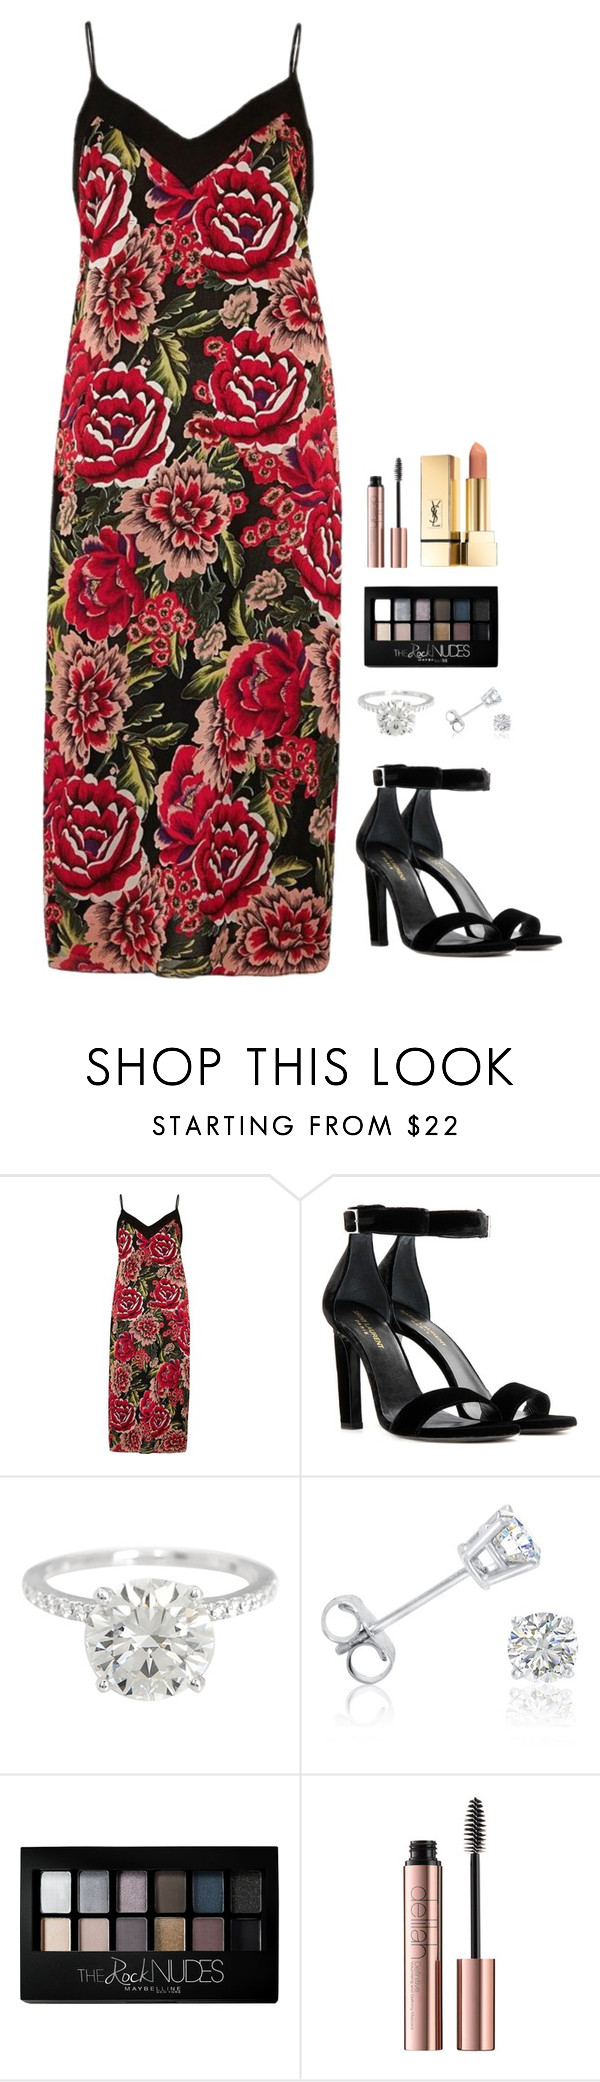 """Untitled #977"" by h1234l on Polyvore featuring River Island, Yves Saint Laurent, Amanda Rose Collection and Maybelline"